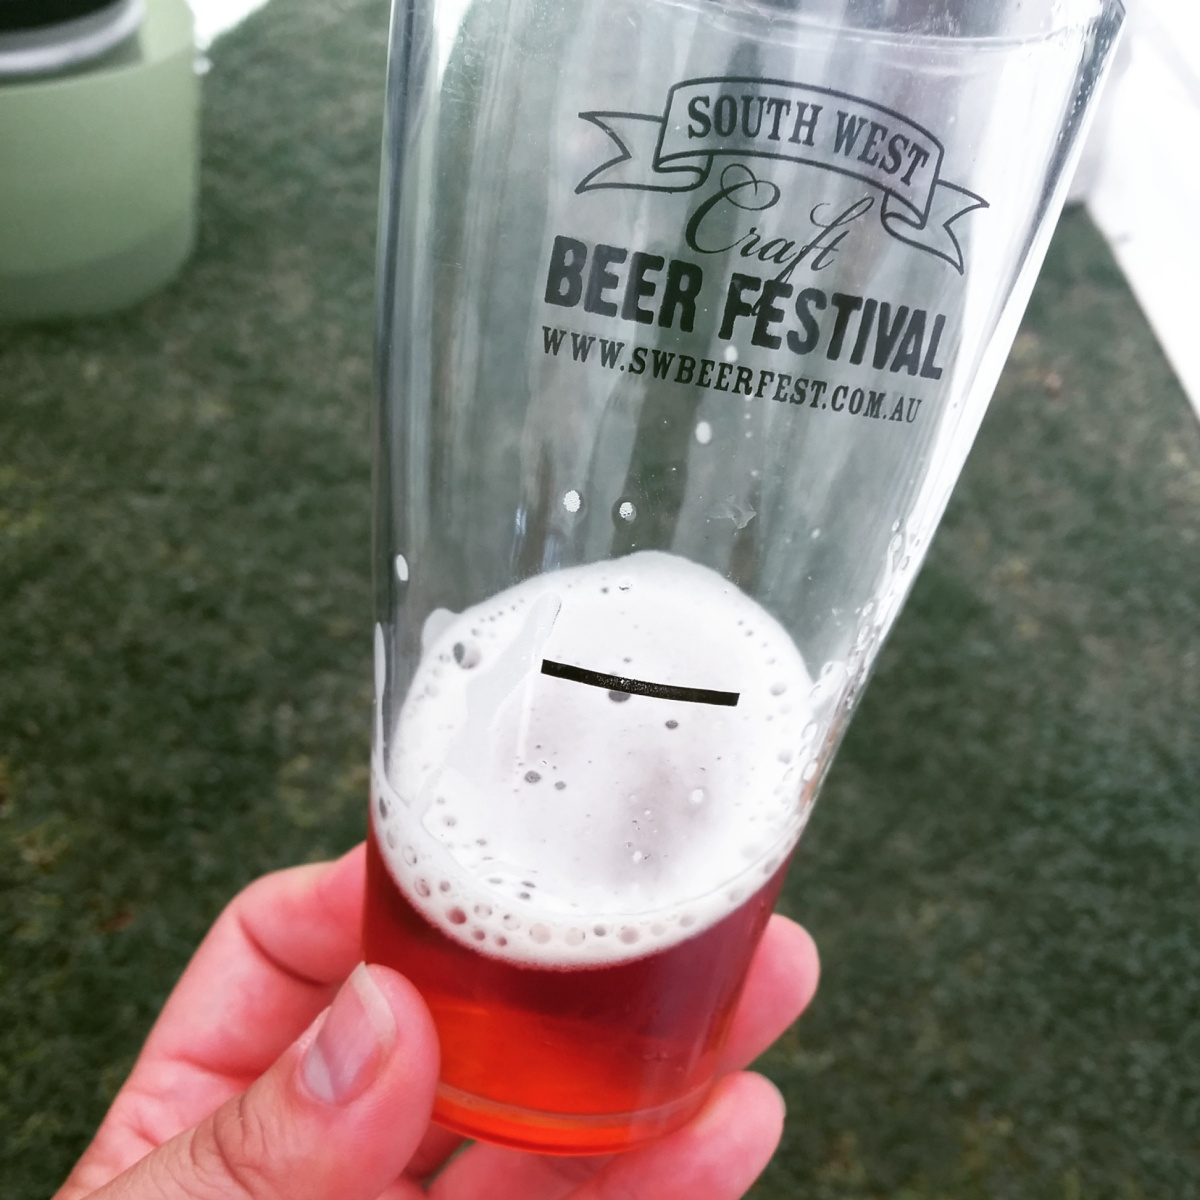 South West Craft Beer Festival 2015